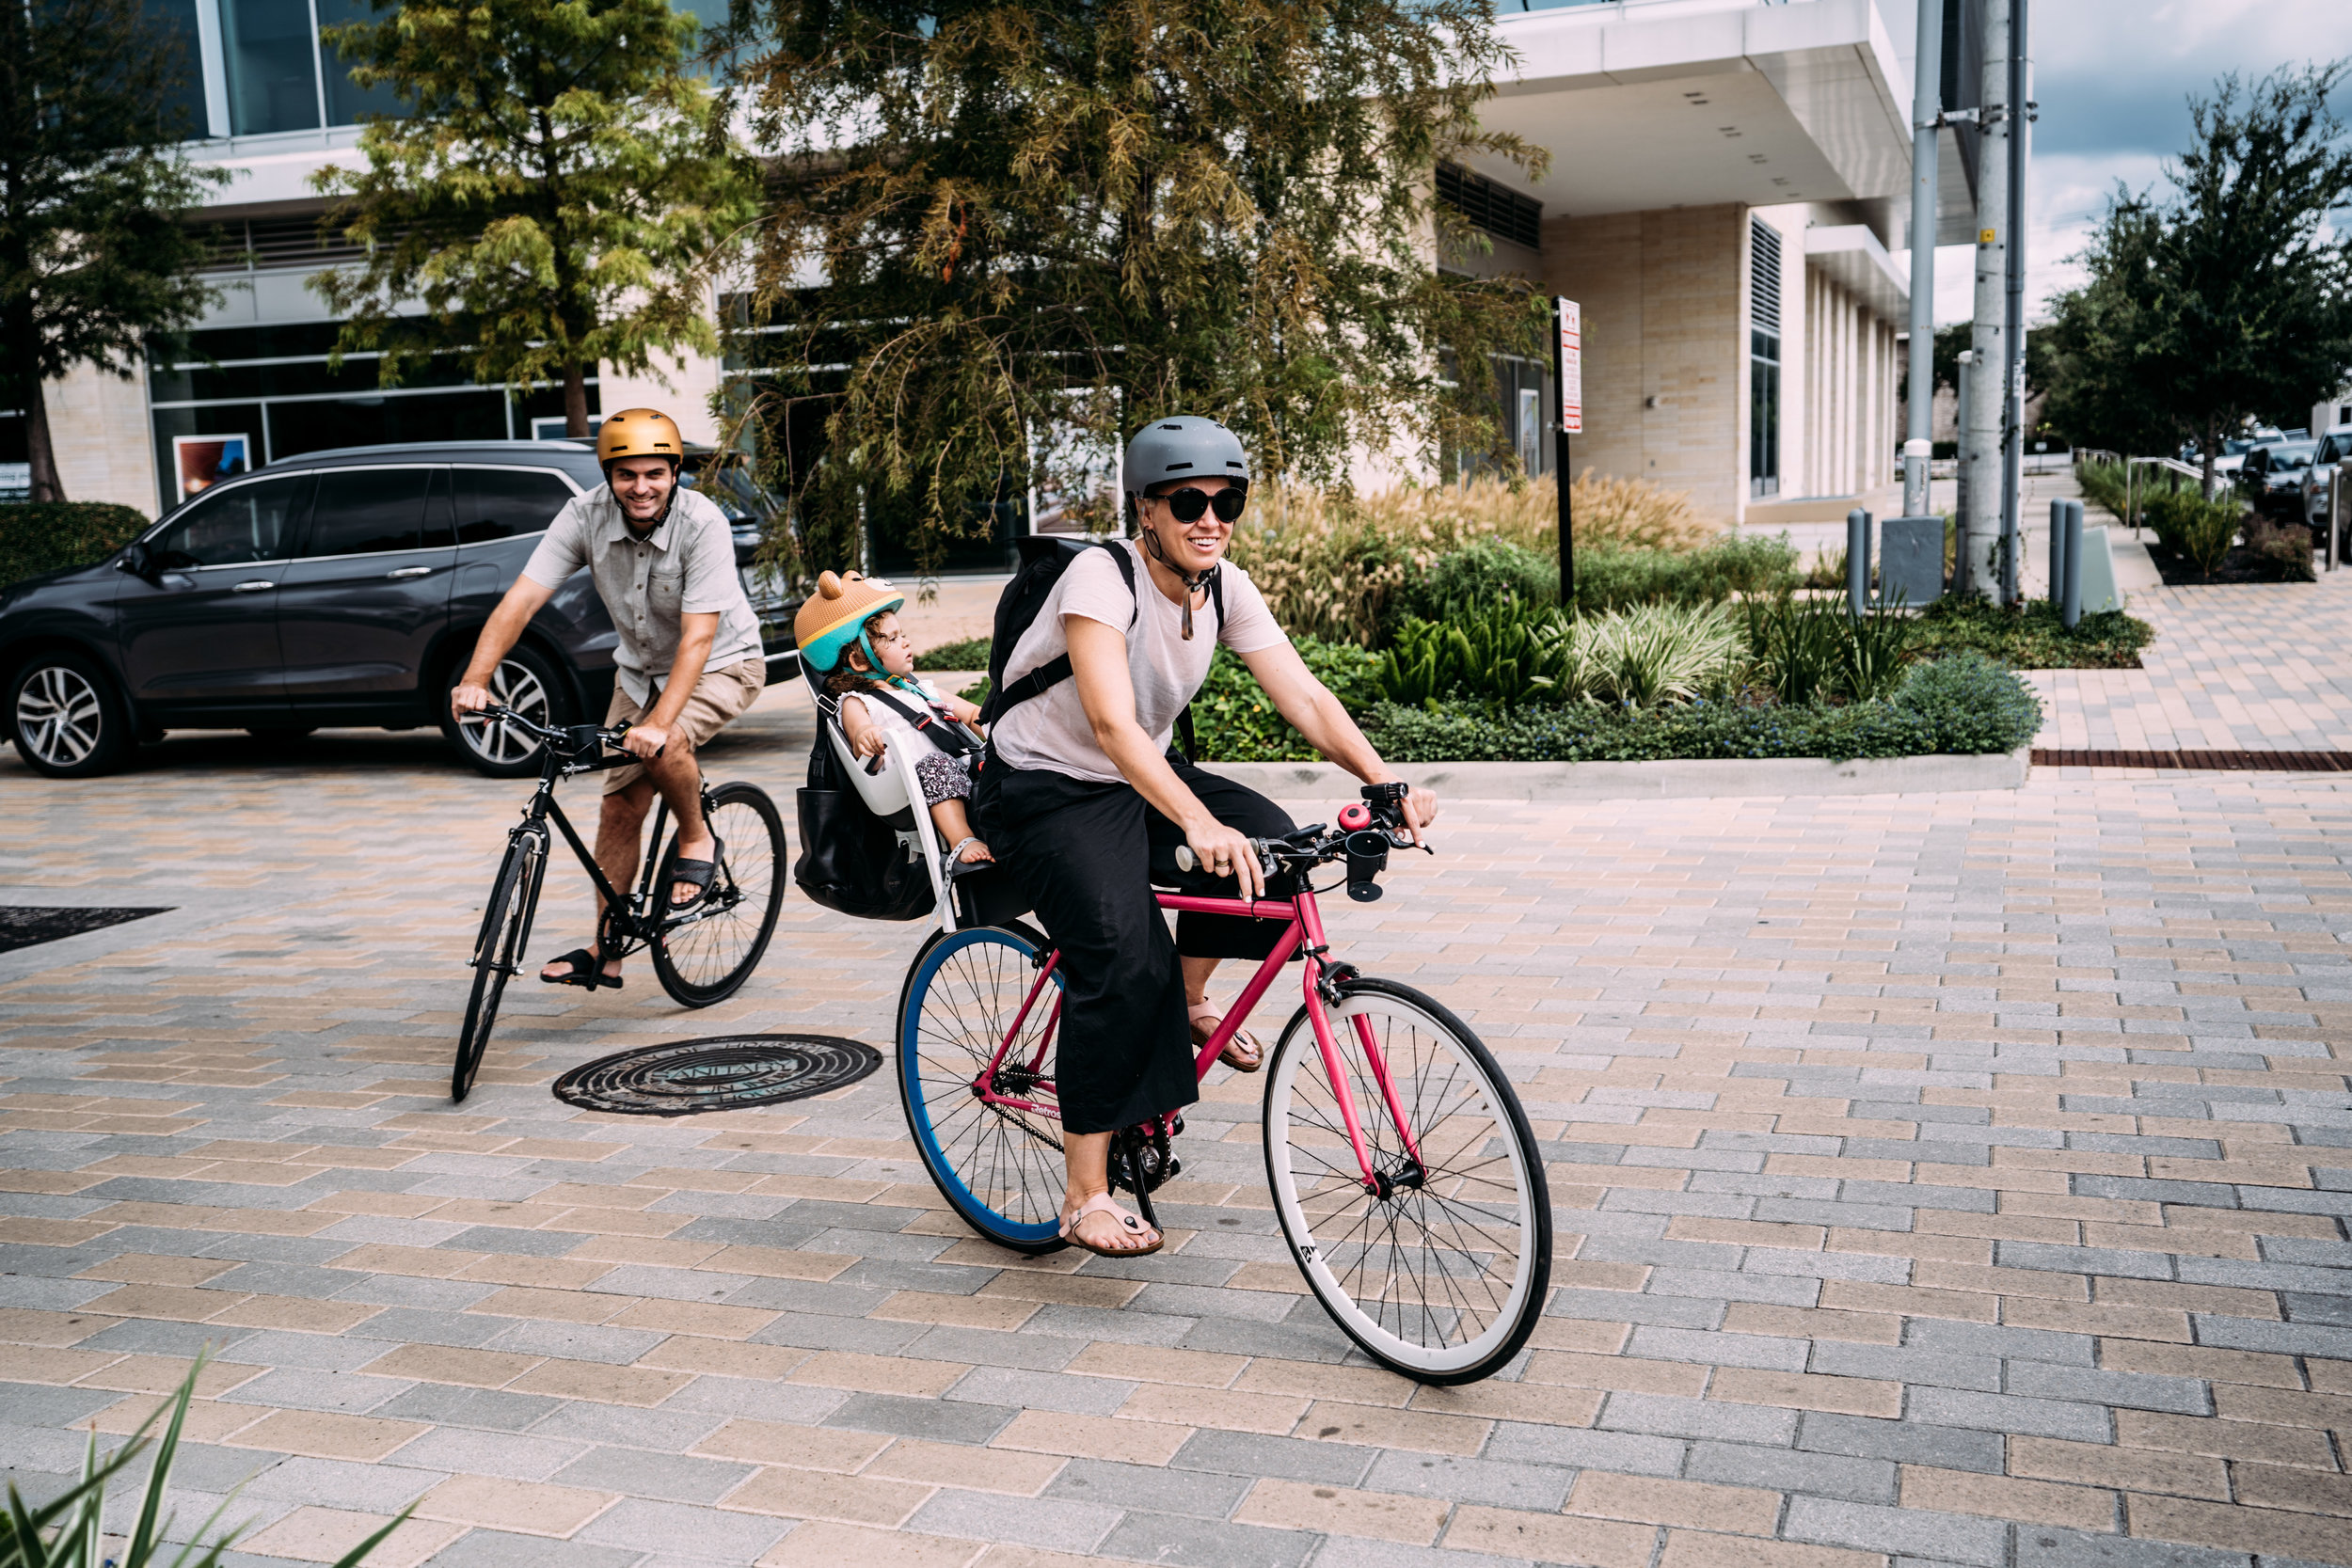 Family Bike Ride In the City